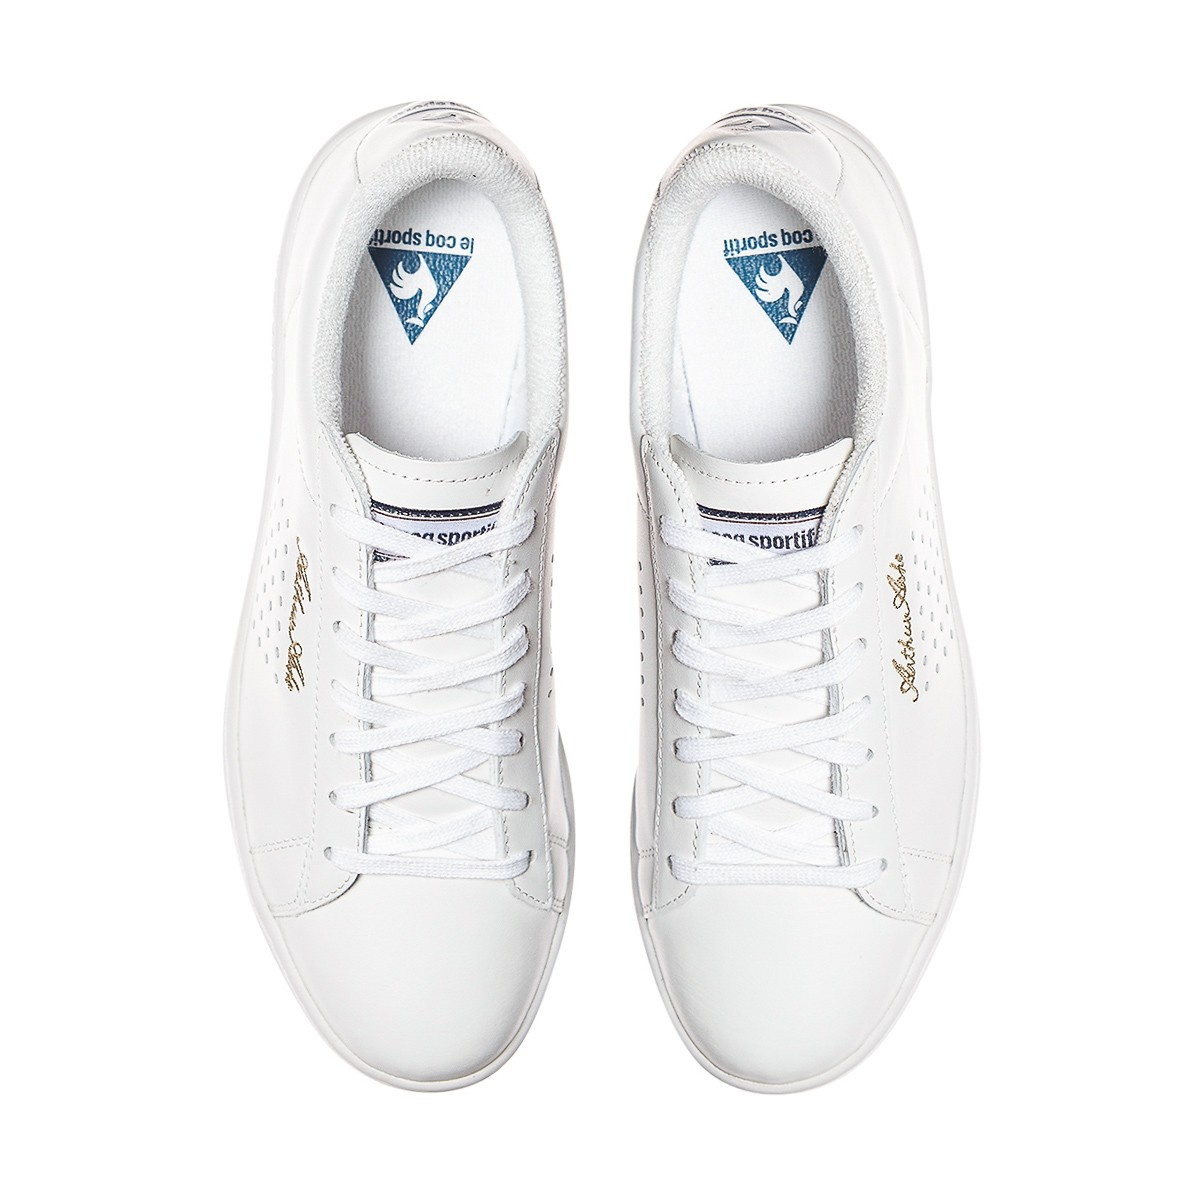 Le coq sportif Arthur Ashe Sneakers in White for Men